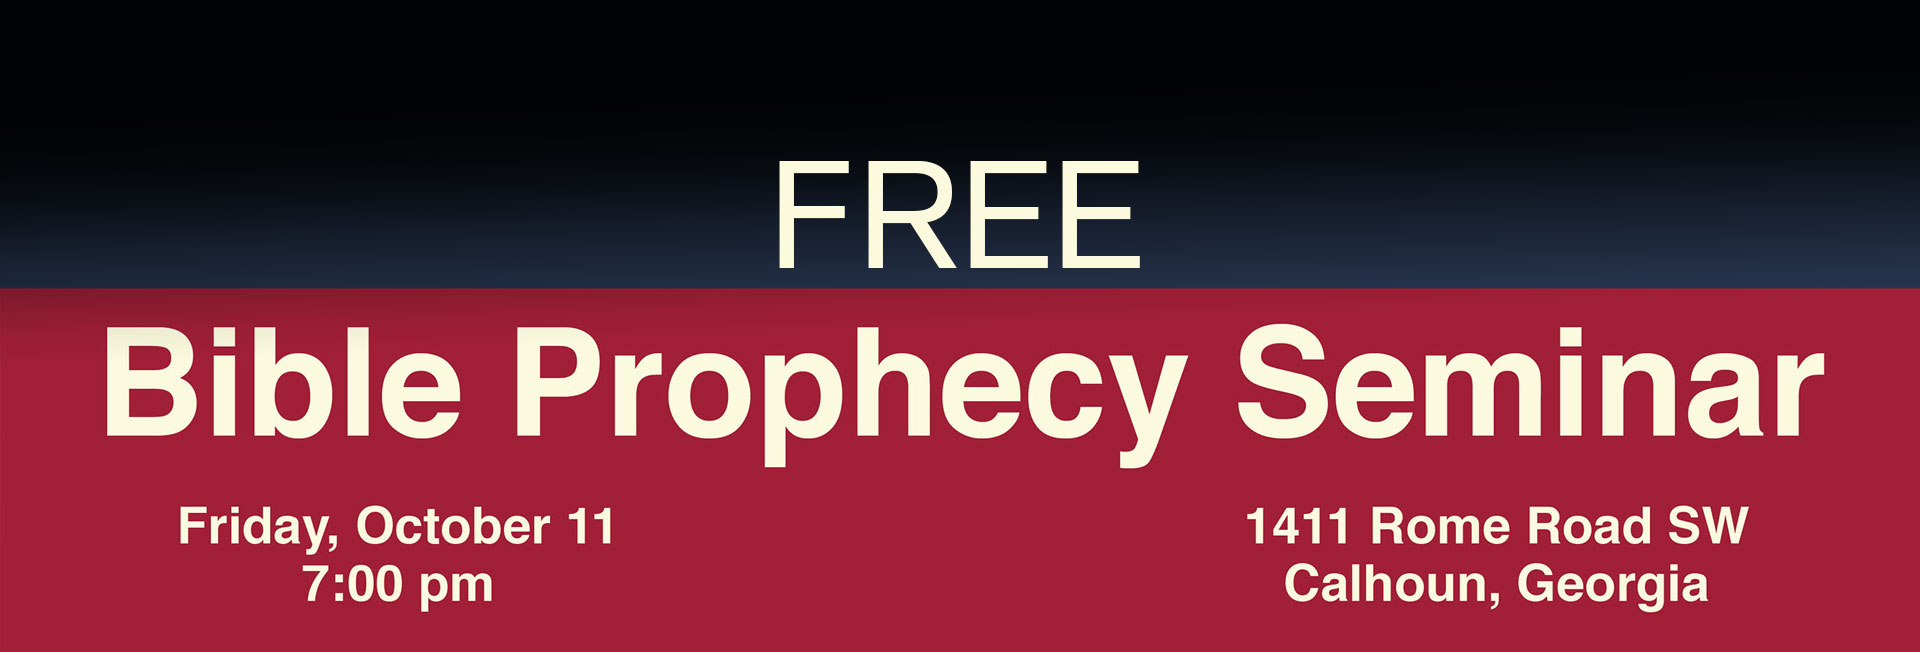 Free Bible Prophecy Seminar -- John Earnhardt -- Friday October 11 at 7:00 pm